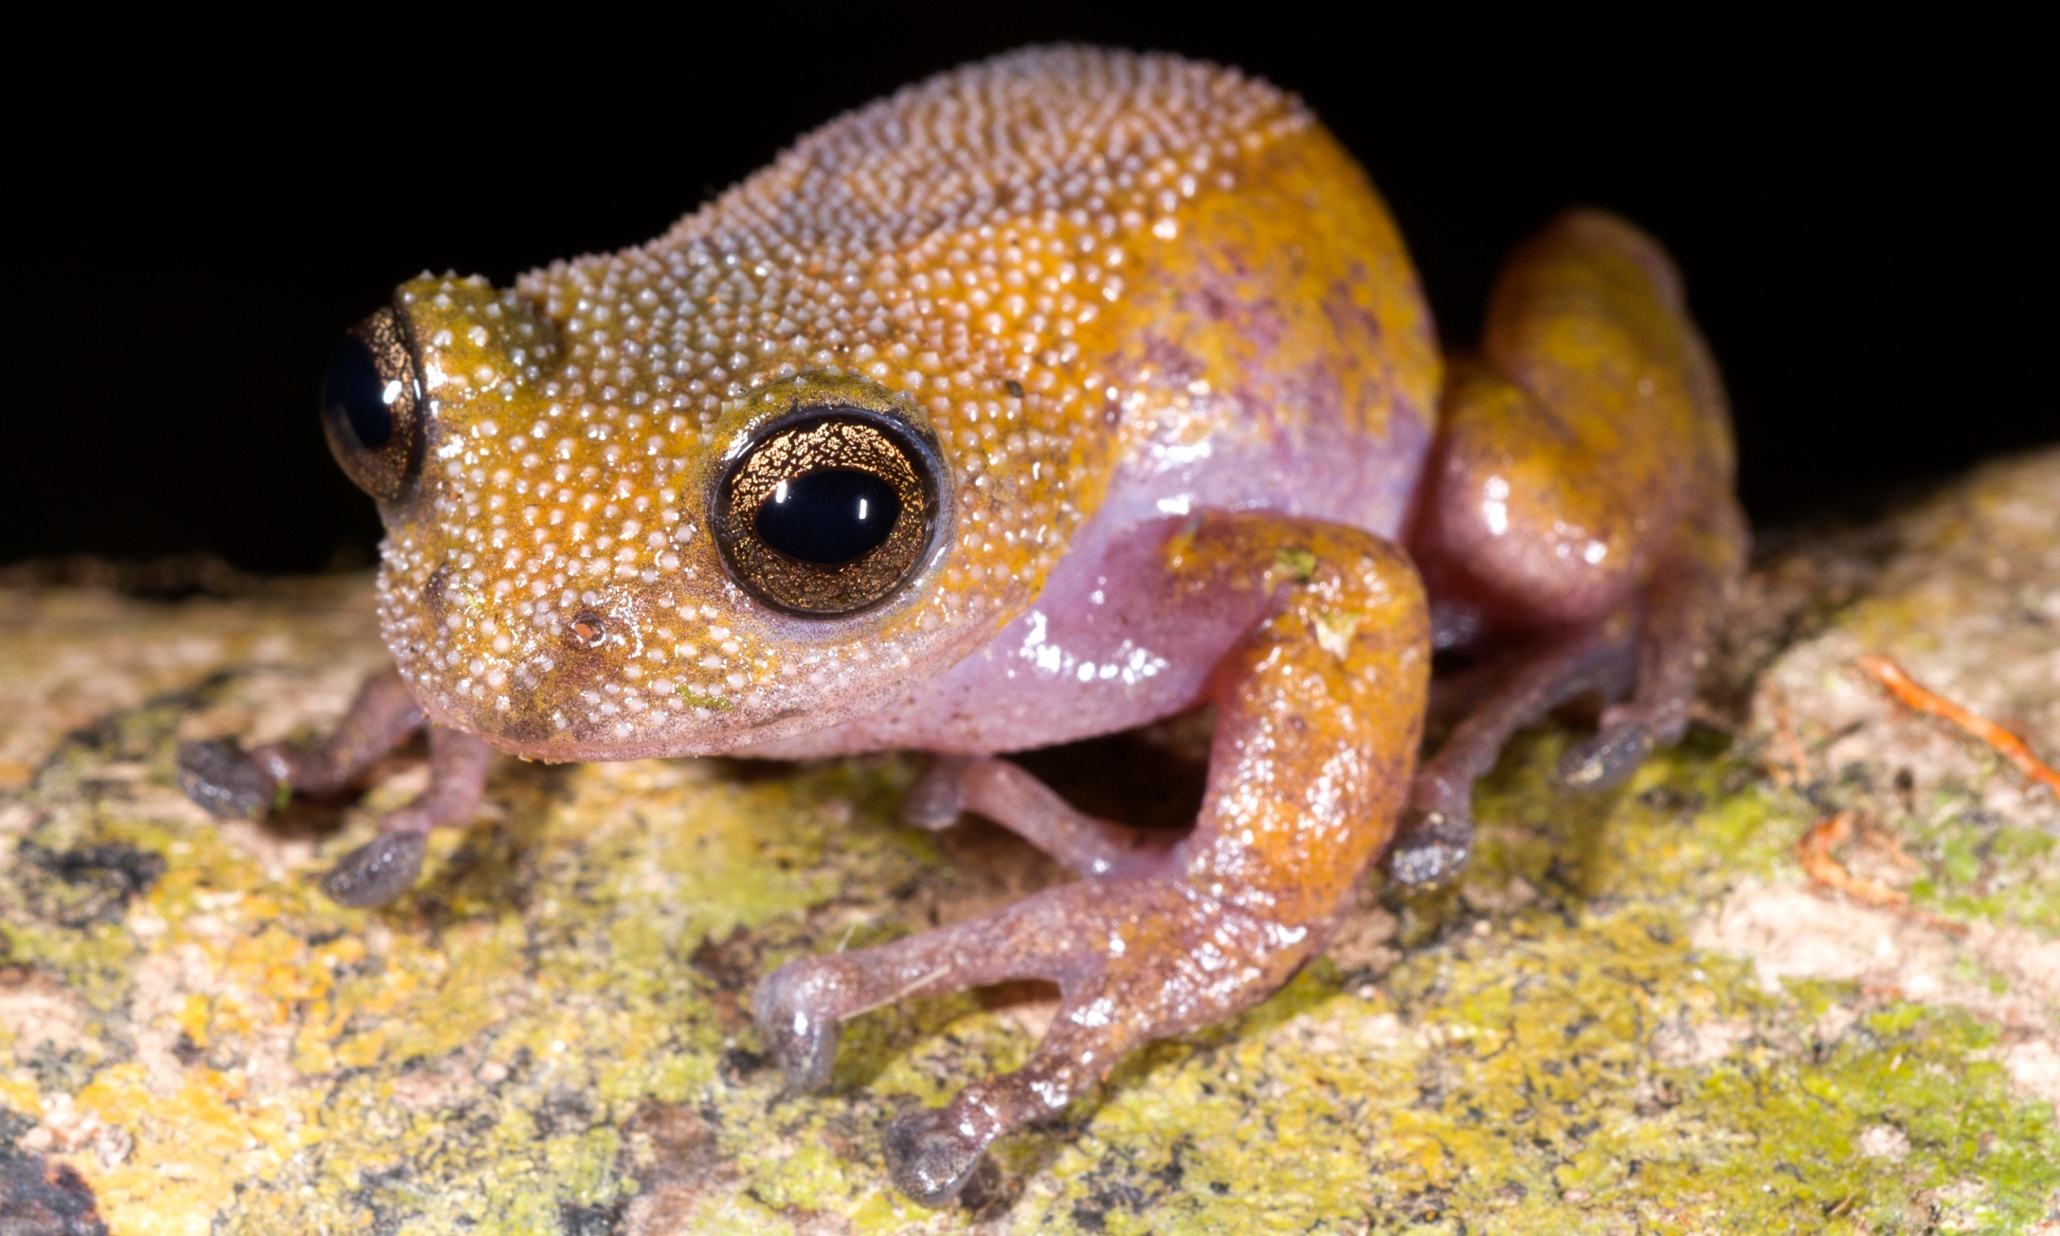 Thorny frog and dementor wasp among new species discove…